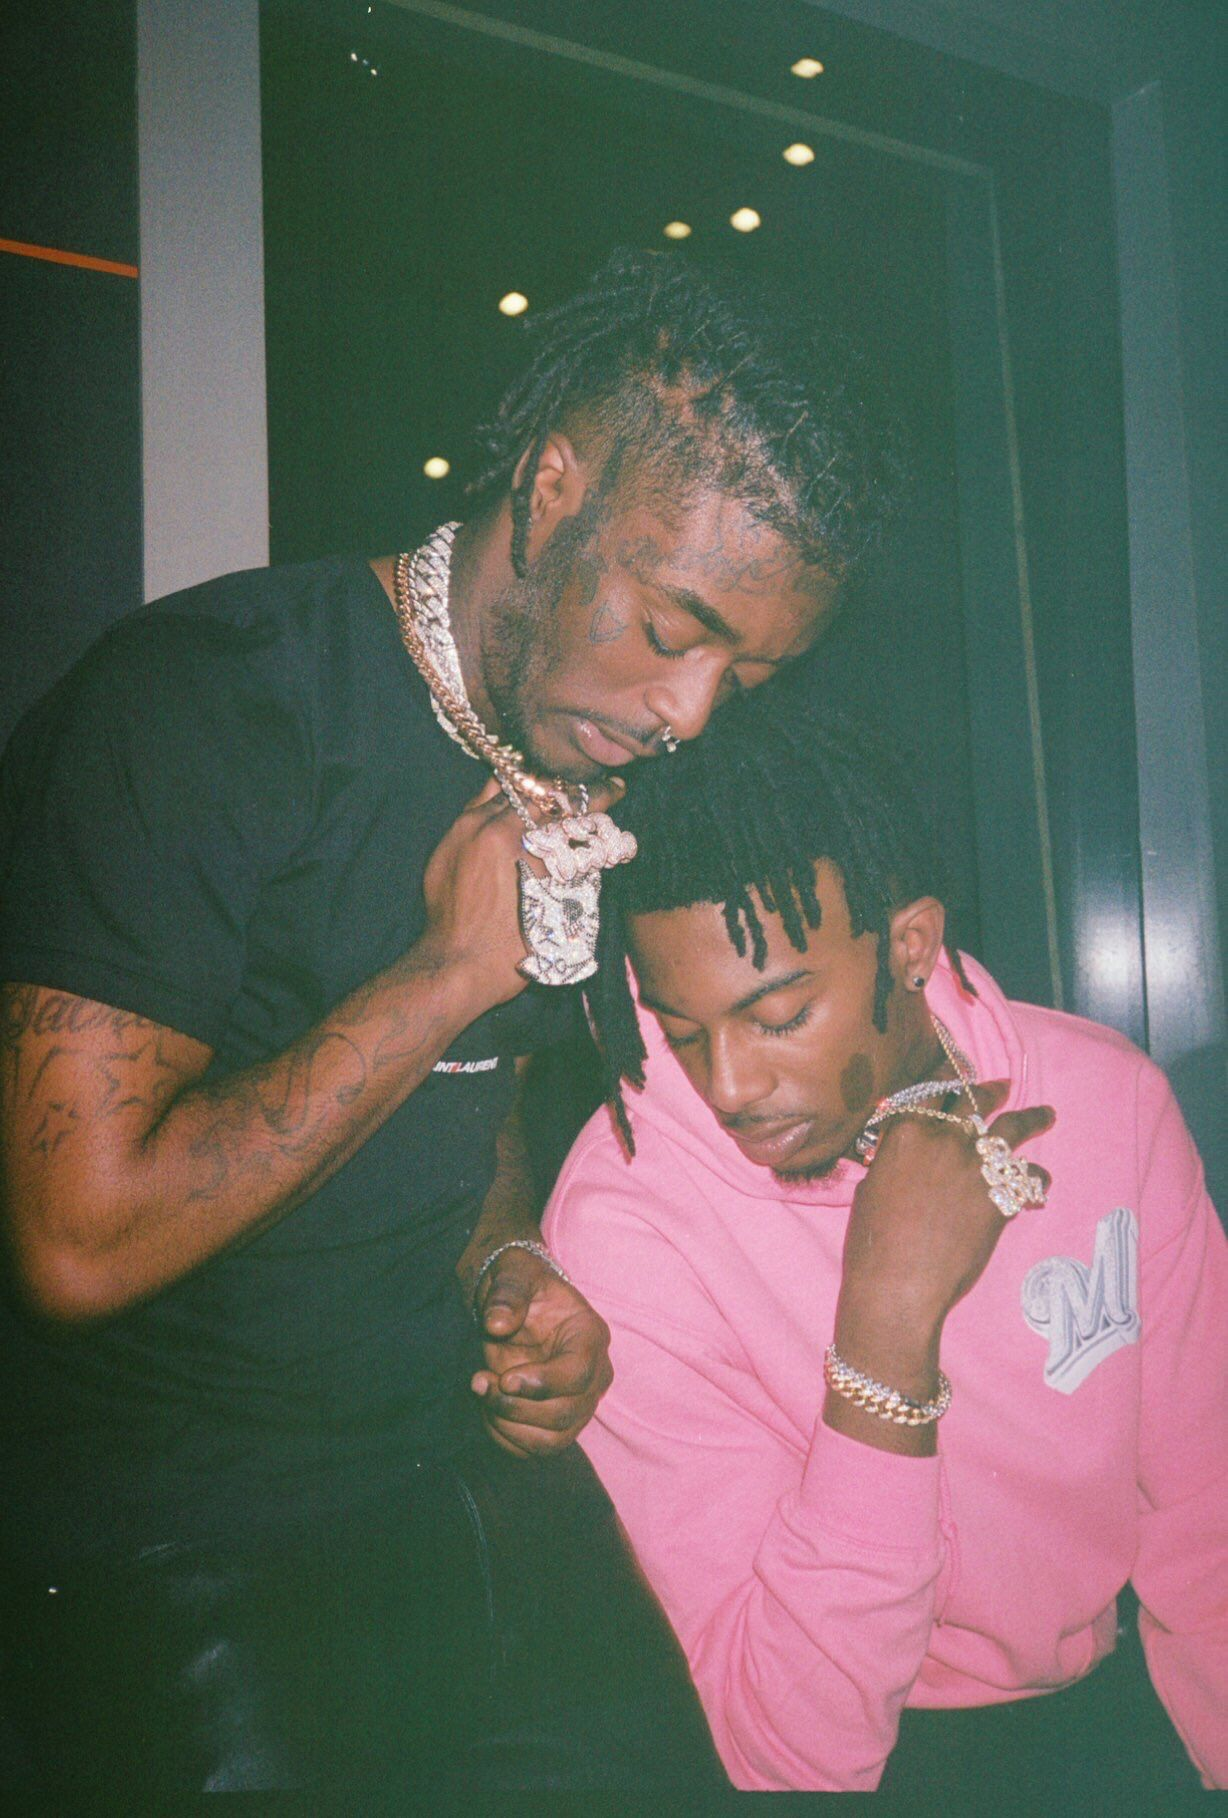 Pin on Lil Uzi Vert and Playboi Carti